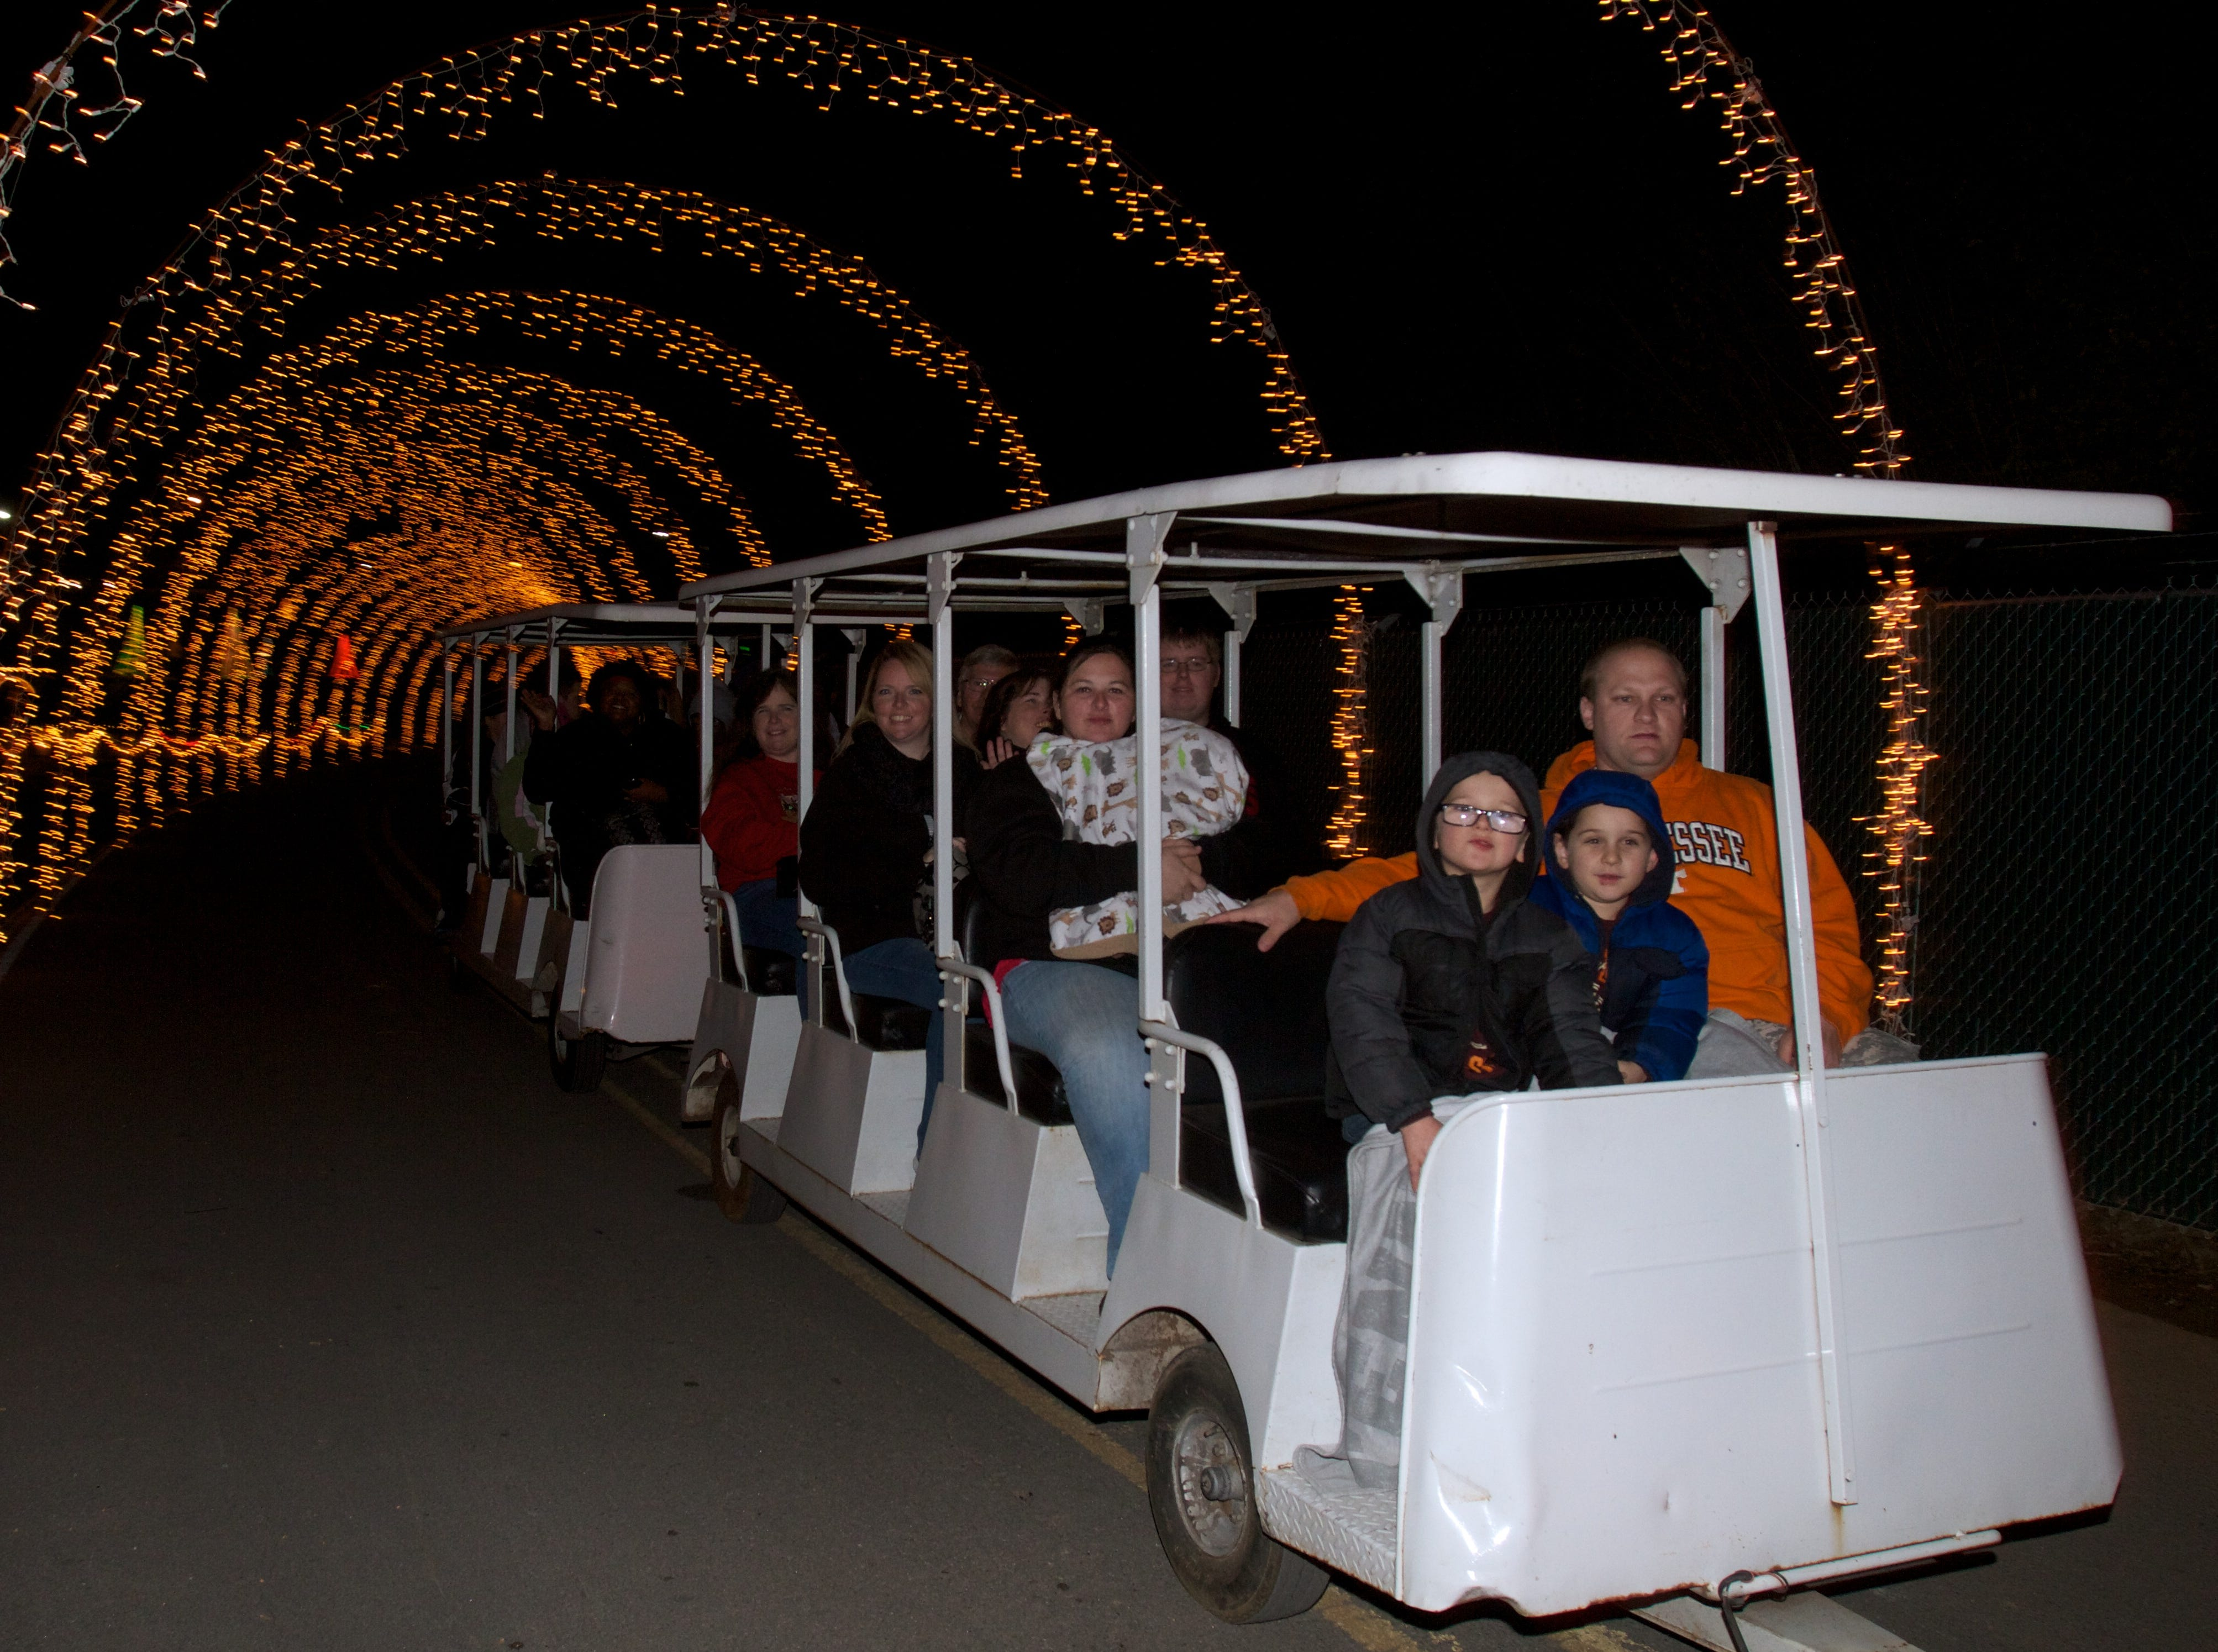 Families ride through Christmas light displays on Friday, November 30, 2012 during Comcast Christmas at Chilhowee Park.